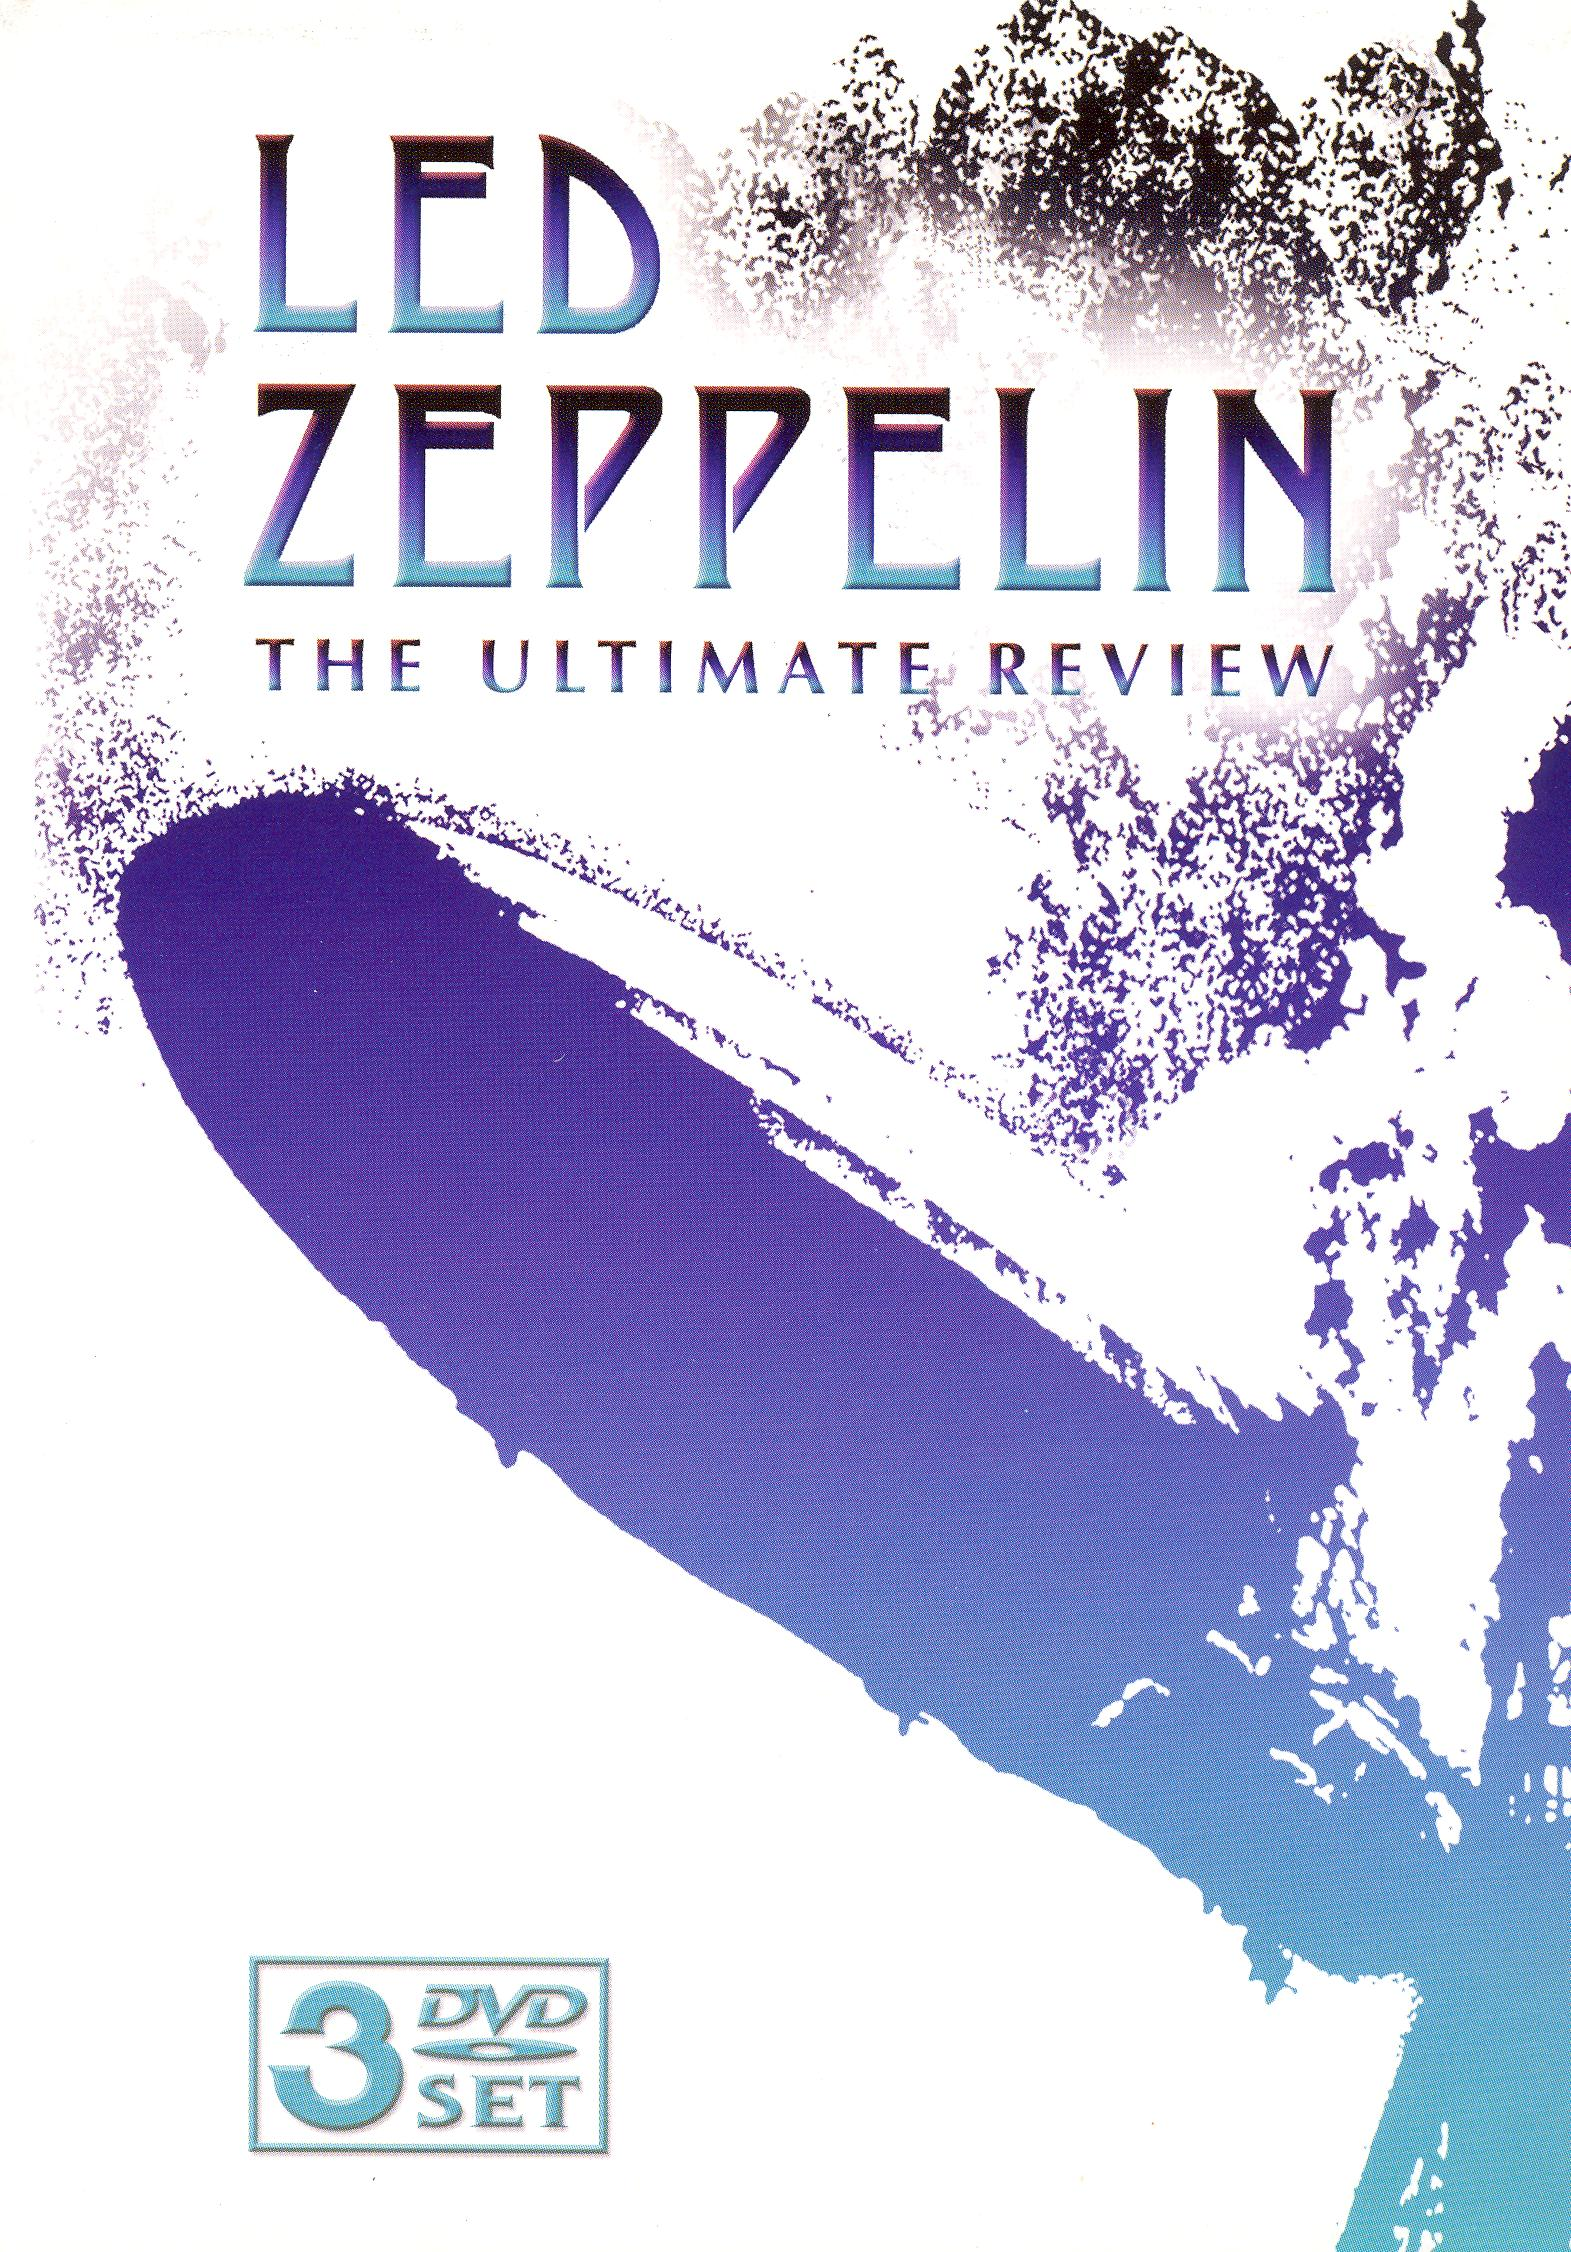 The Ultimate Review: Led Zepplin